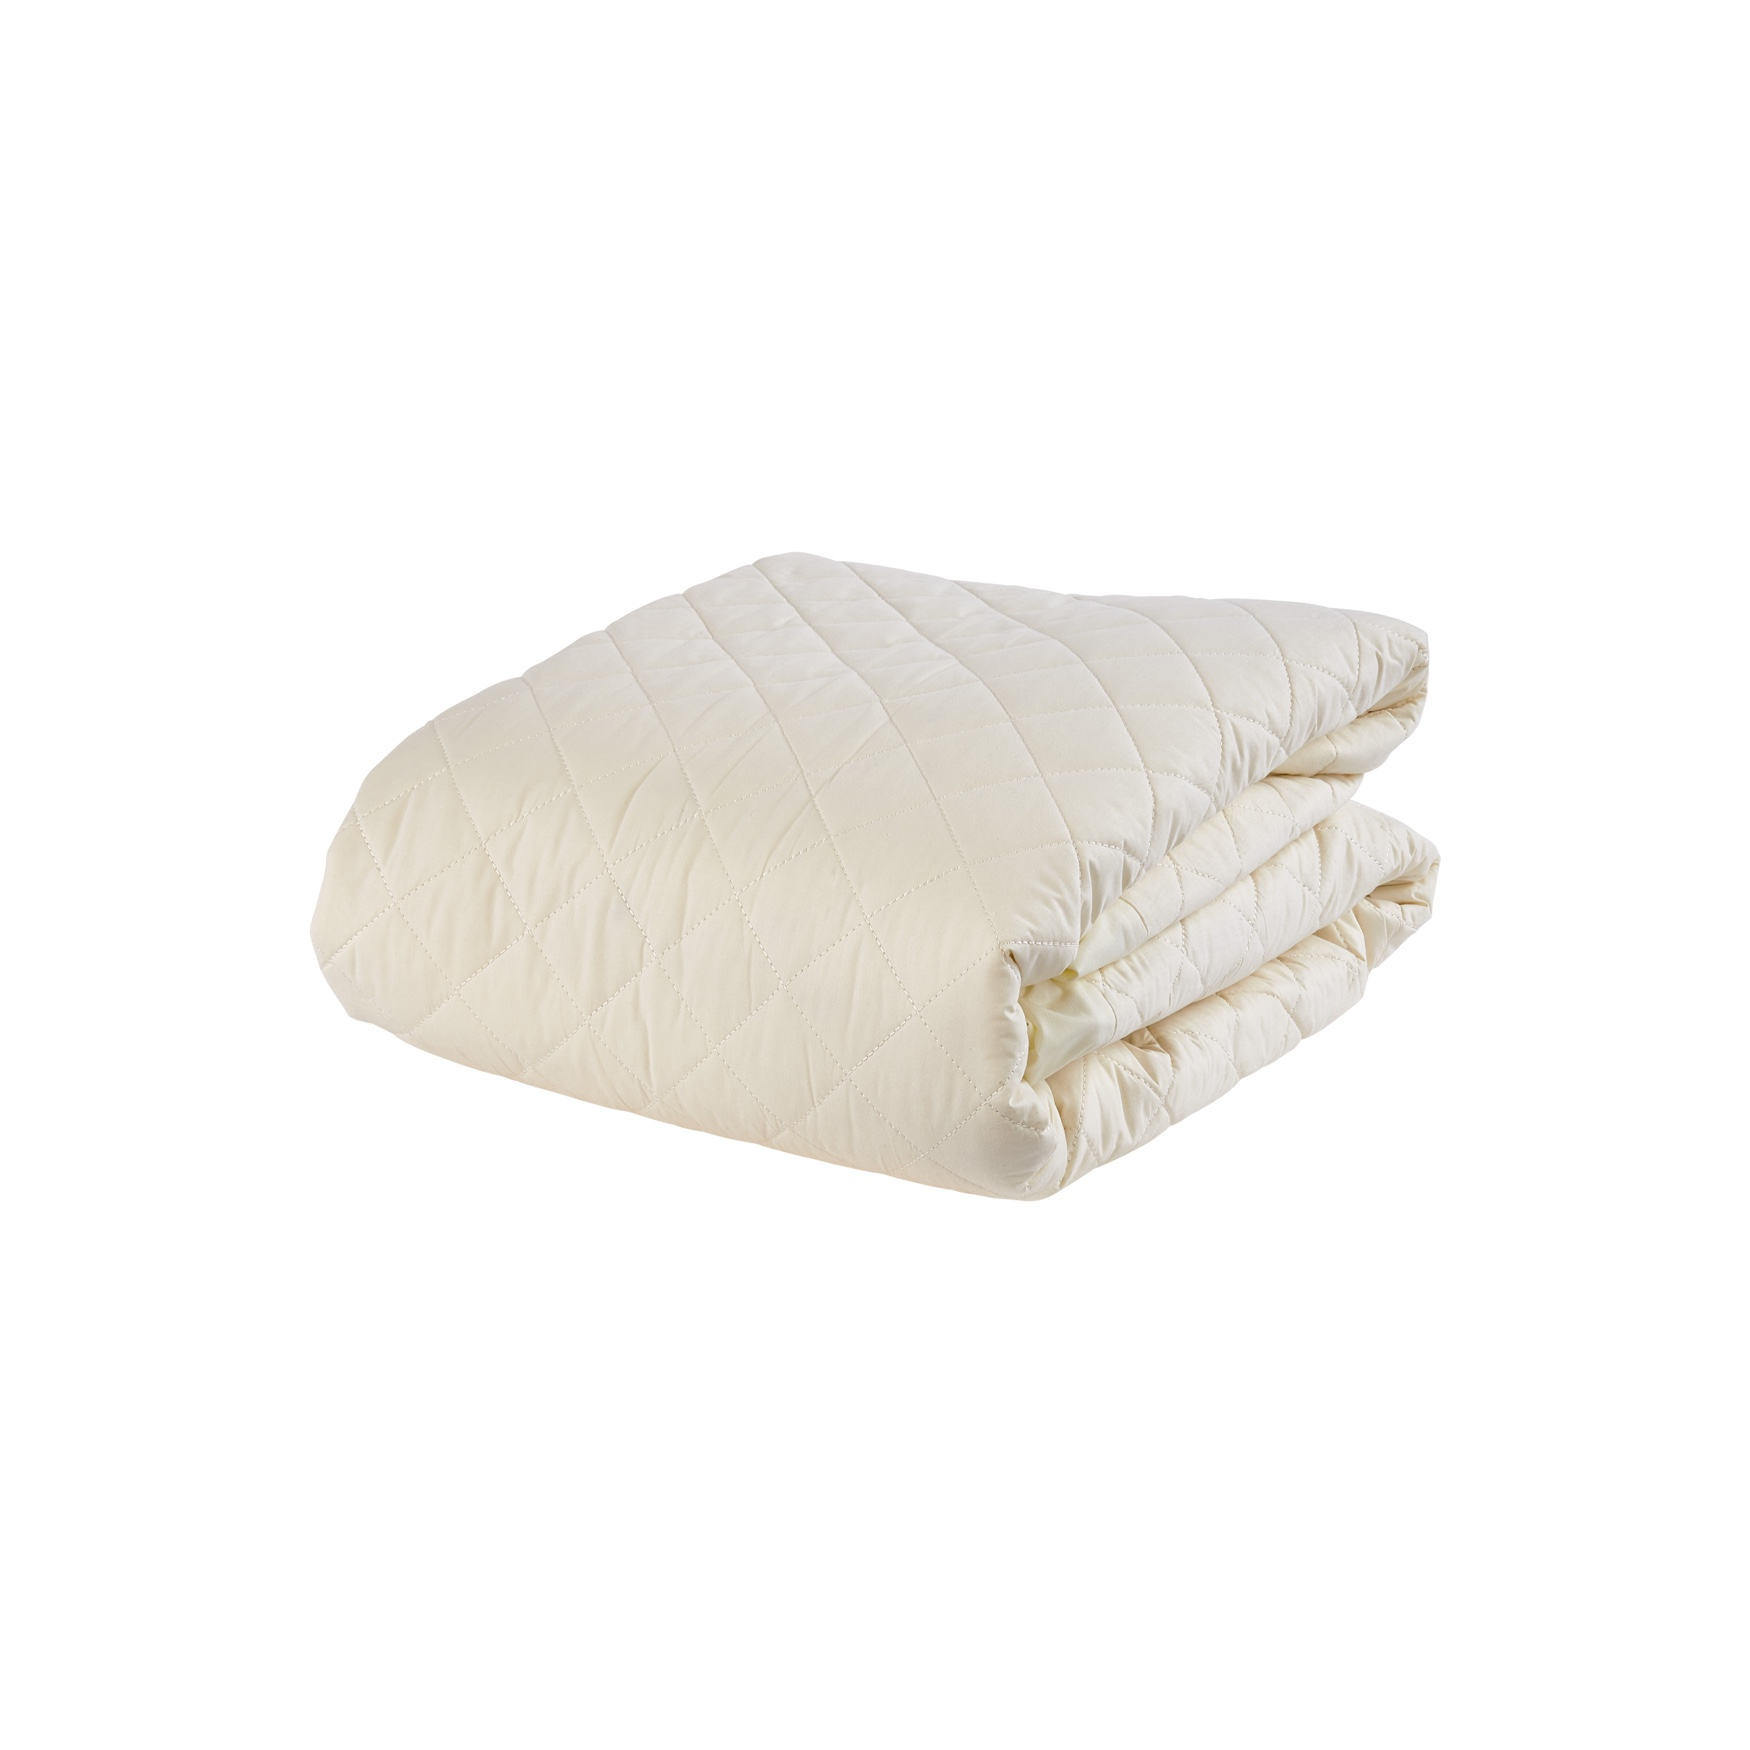 myProtector™ 2-in-1 washable natural wool mattress protector,